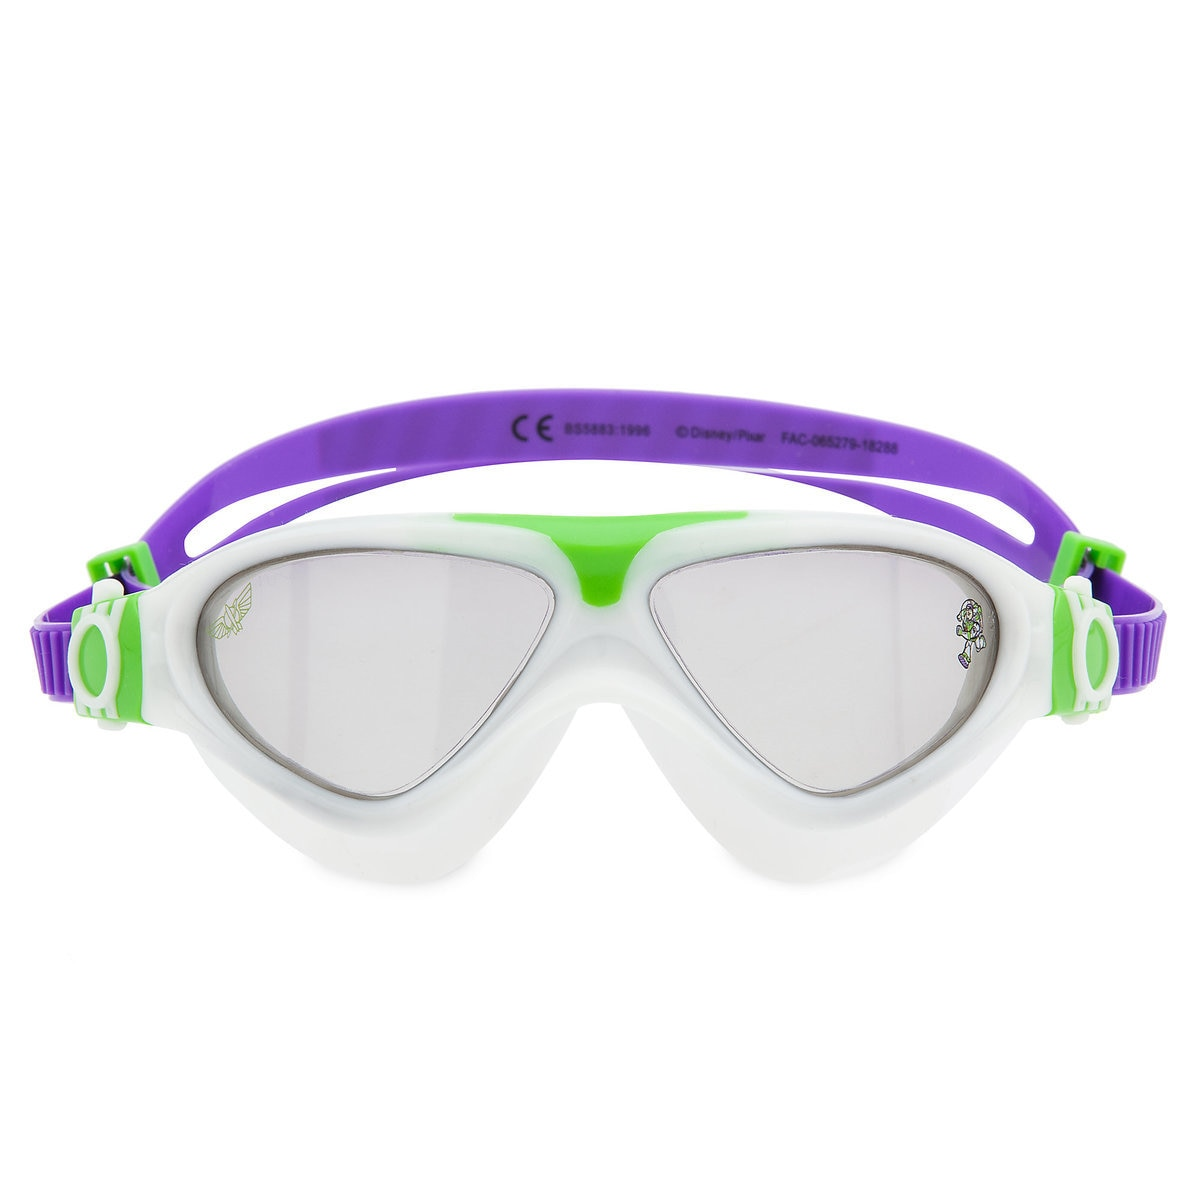 09d215a2f7c4 Product Image of Buzz Lightyear Swim Goggles for Kids   1